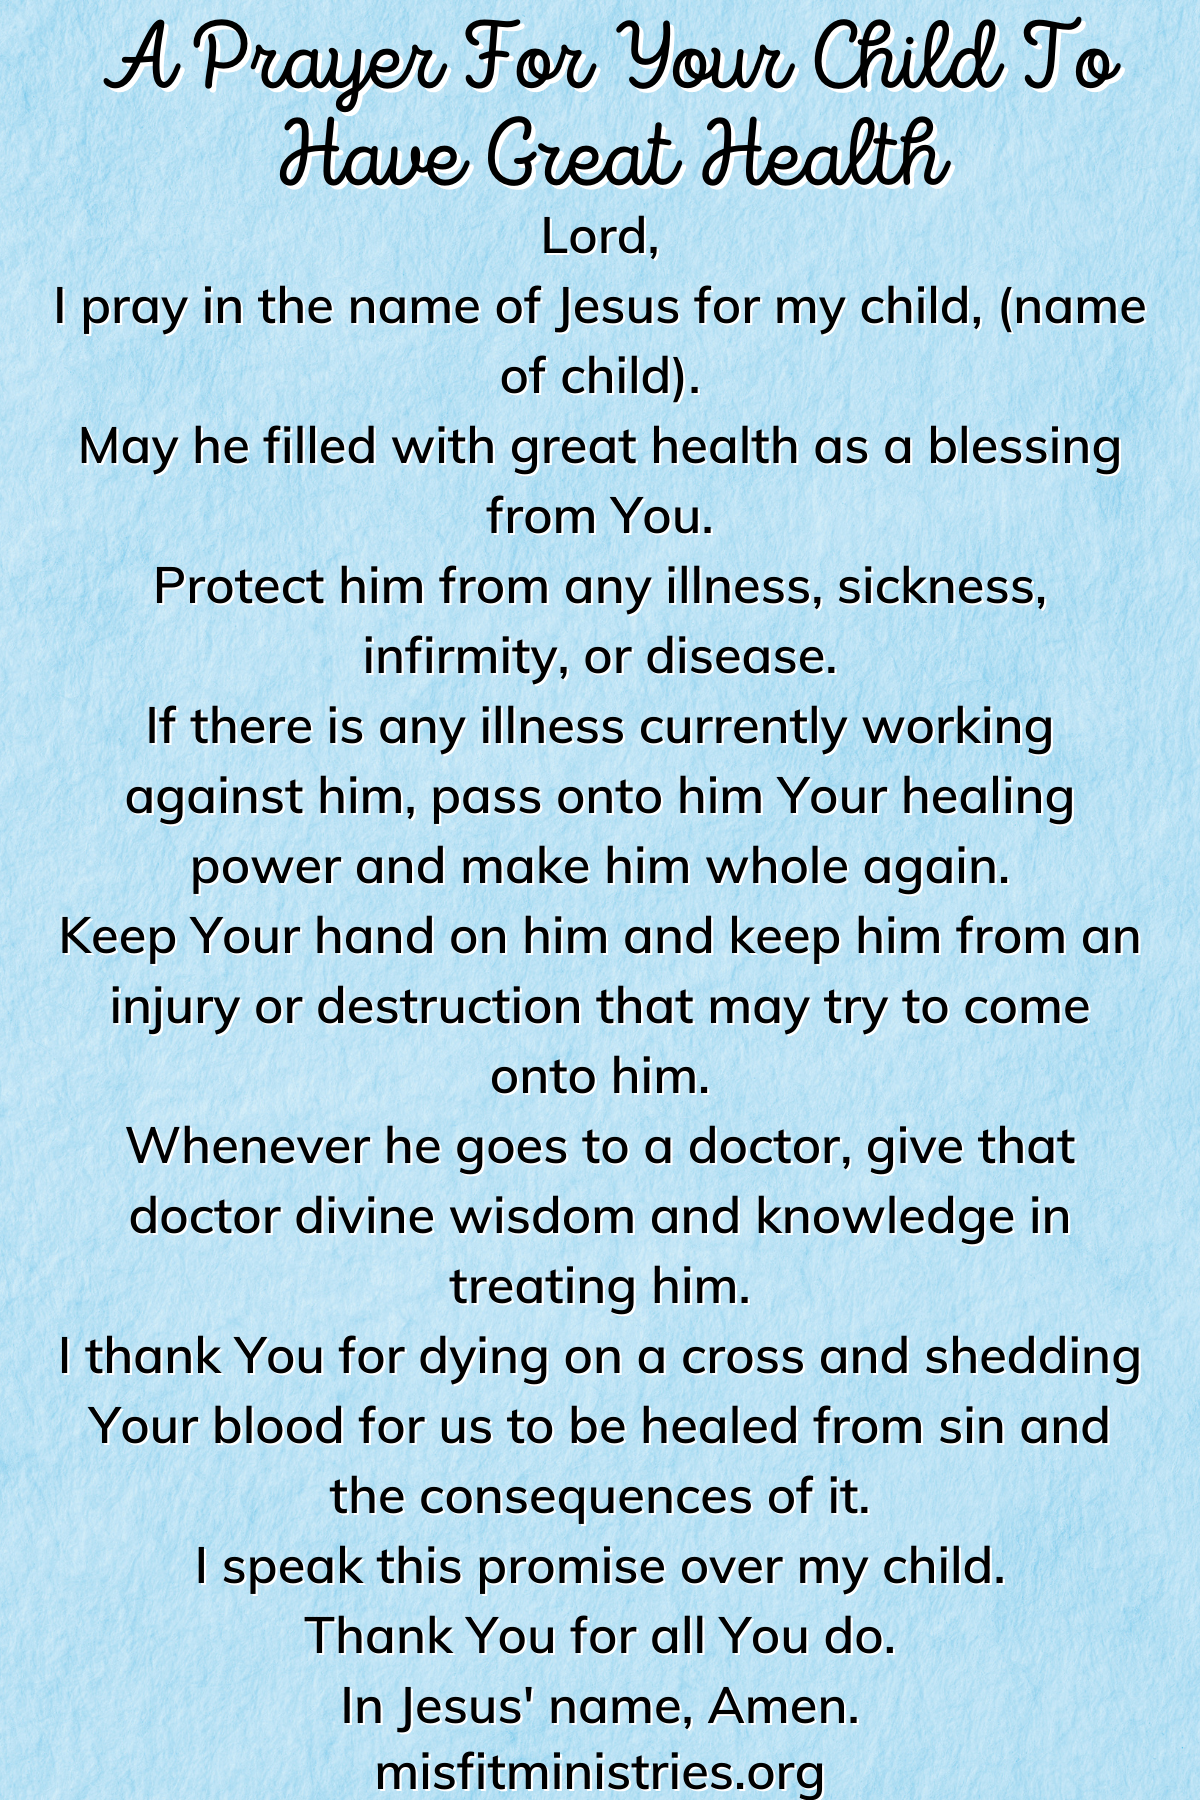 a prayer for your child to have great health